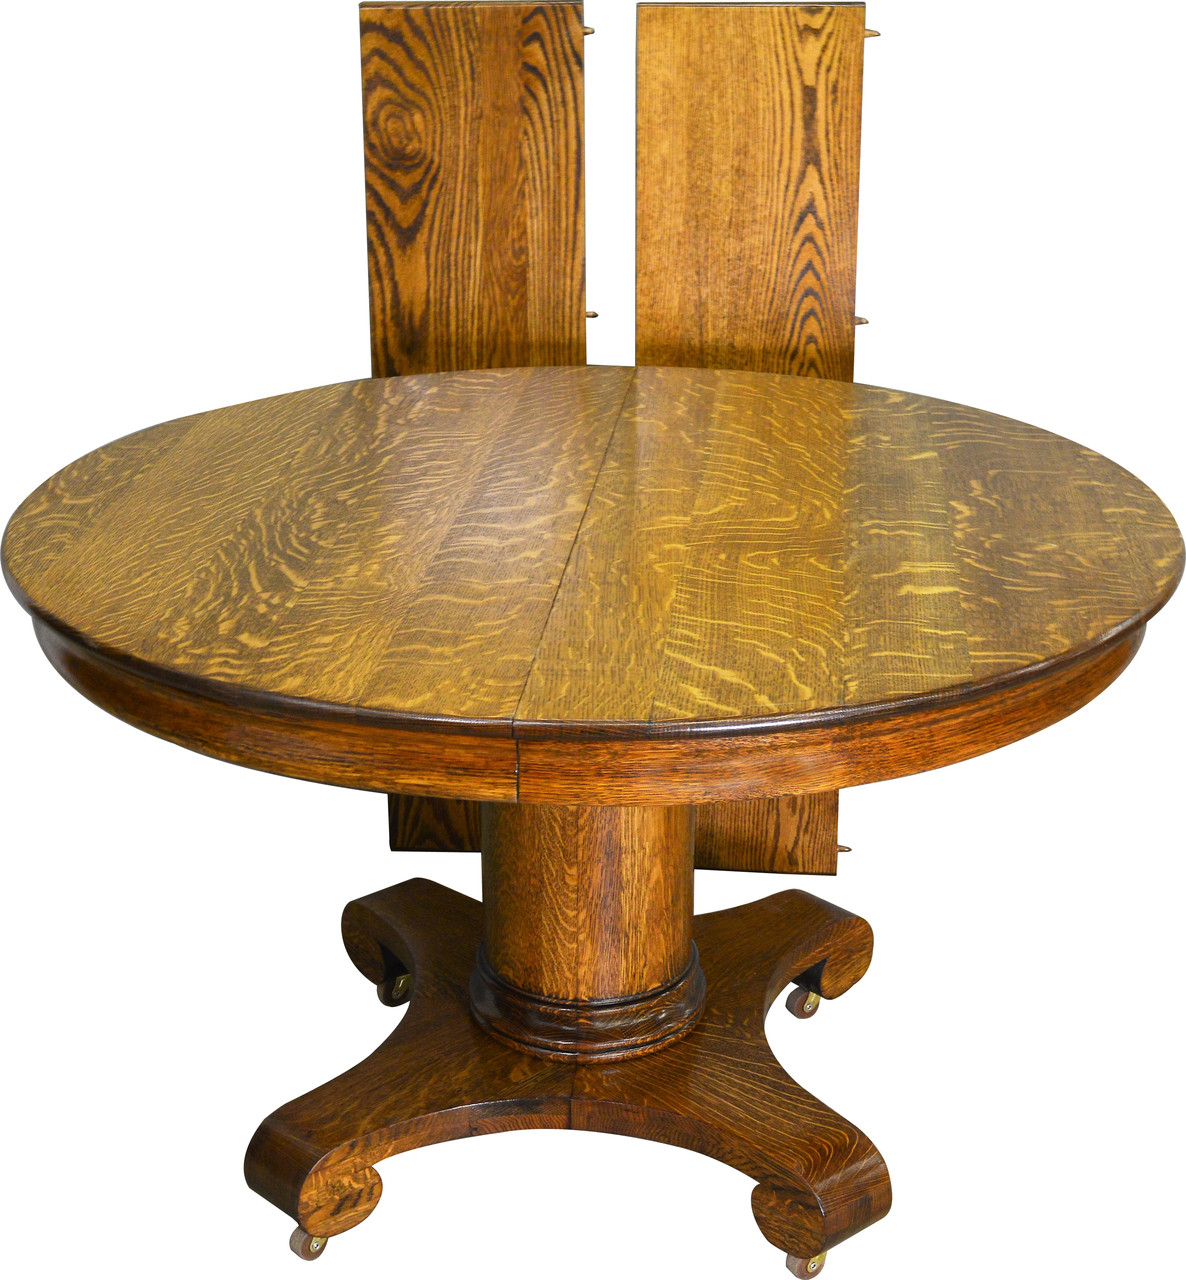 Round Oak Dining Table 19554 Antique Round Oak Empire Dining Table